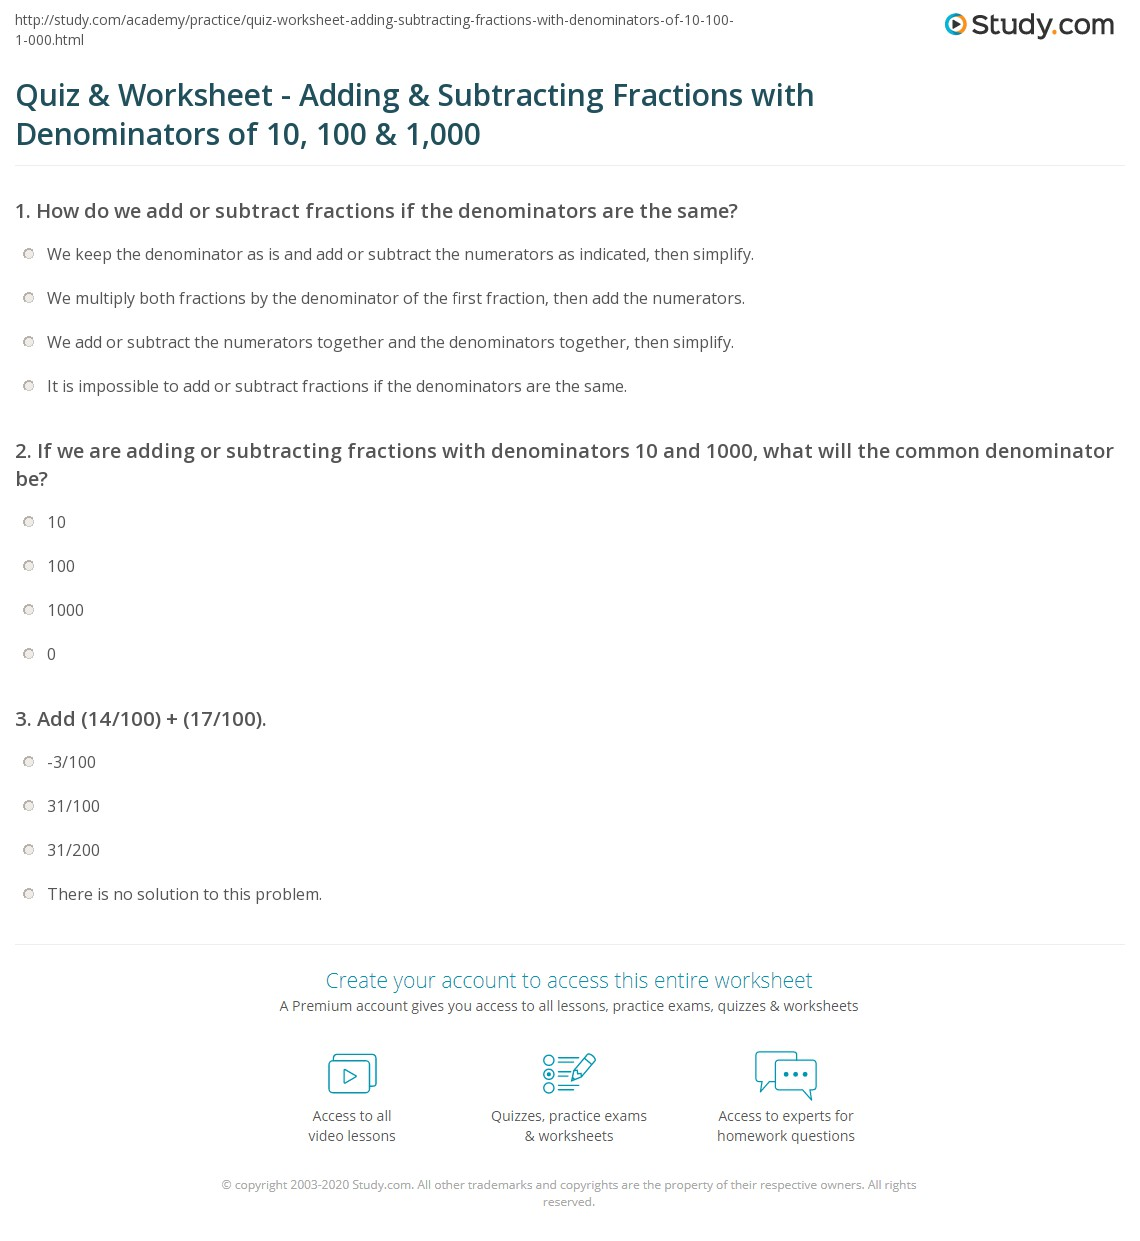 Quiz Worksheet Adding Subtracting Fractions with – Adding and Subtracting Fractions with Whole Numbers Worksheets